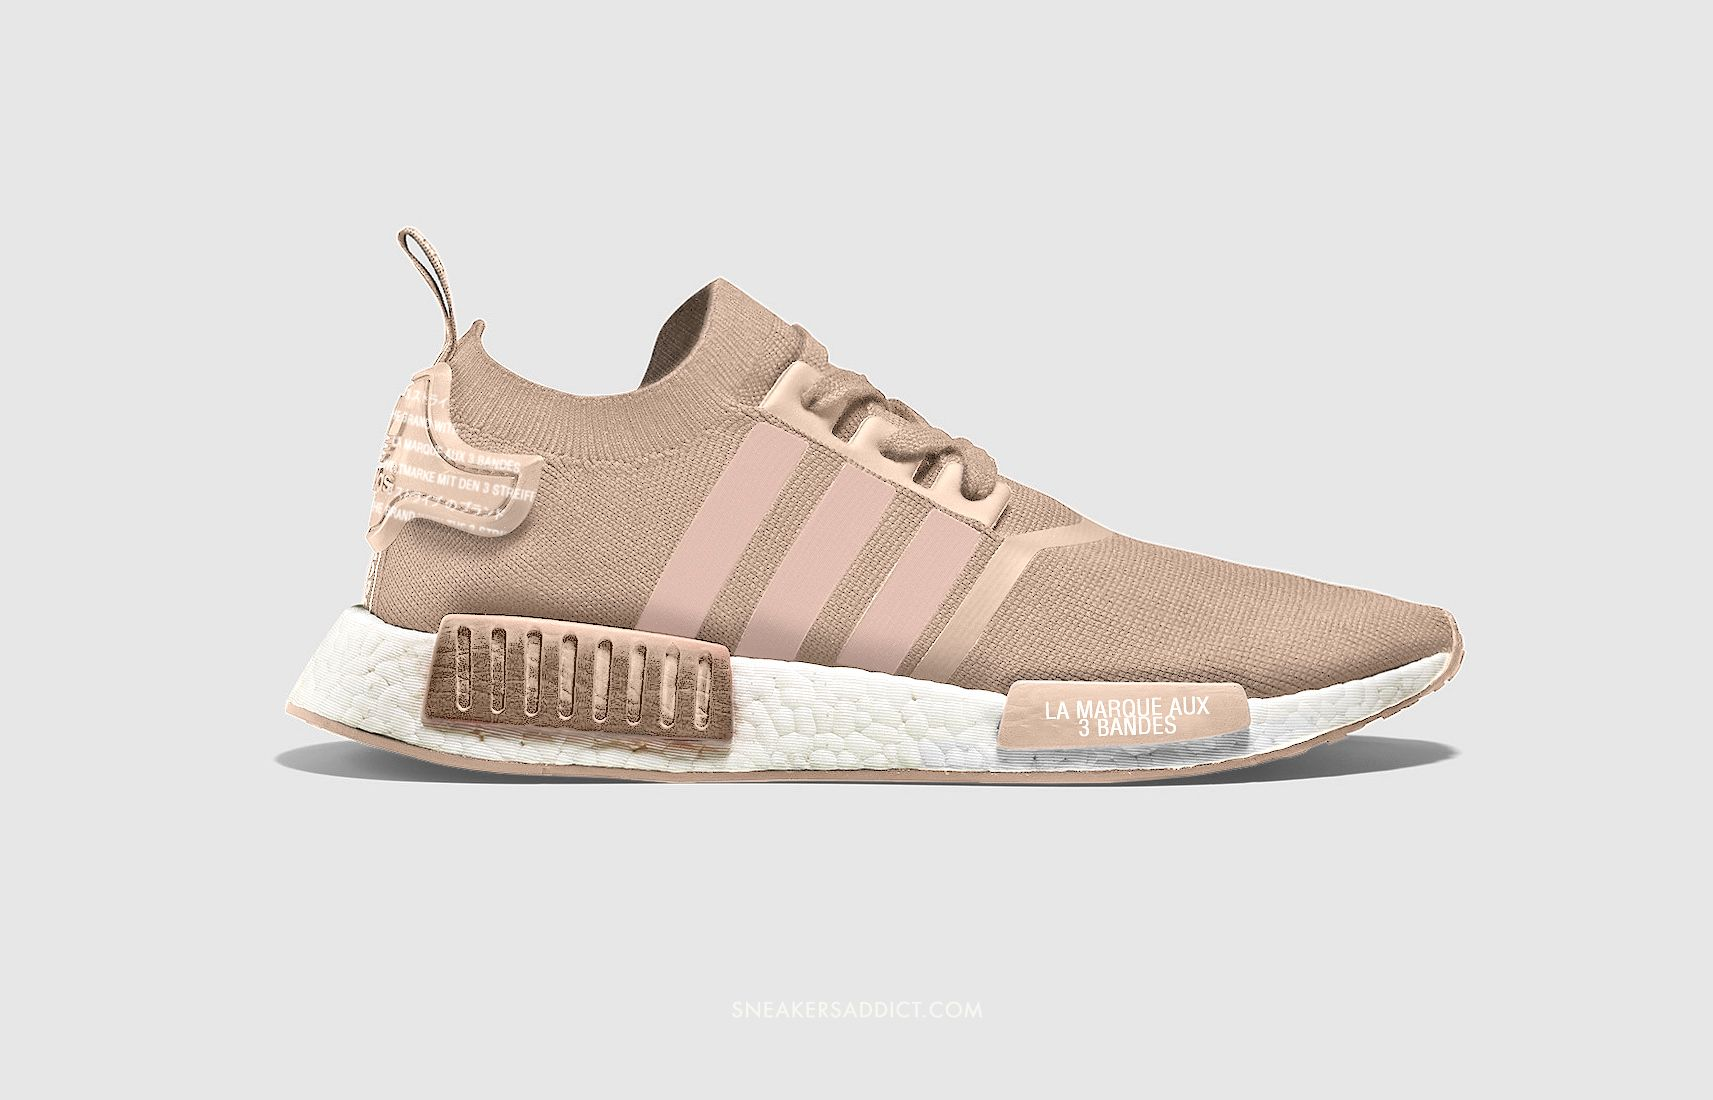 revendeur 5262c 075e0 Adidas Nmd R1 Rose Gold kenmore-cleaning.co.uk